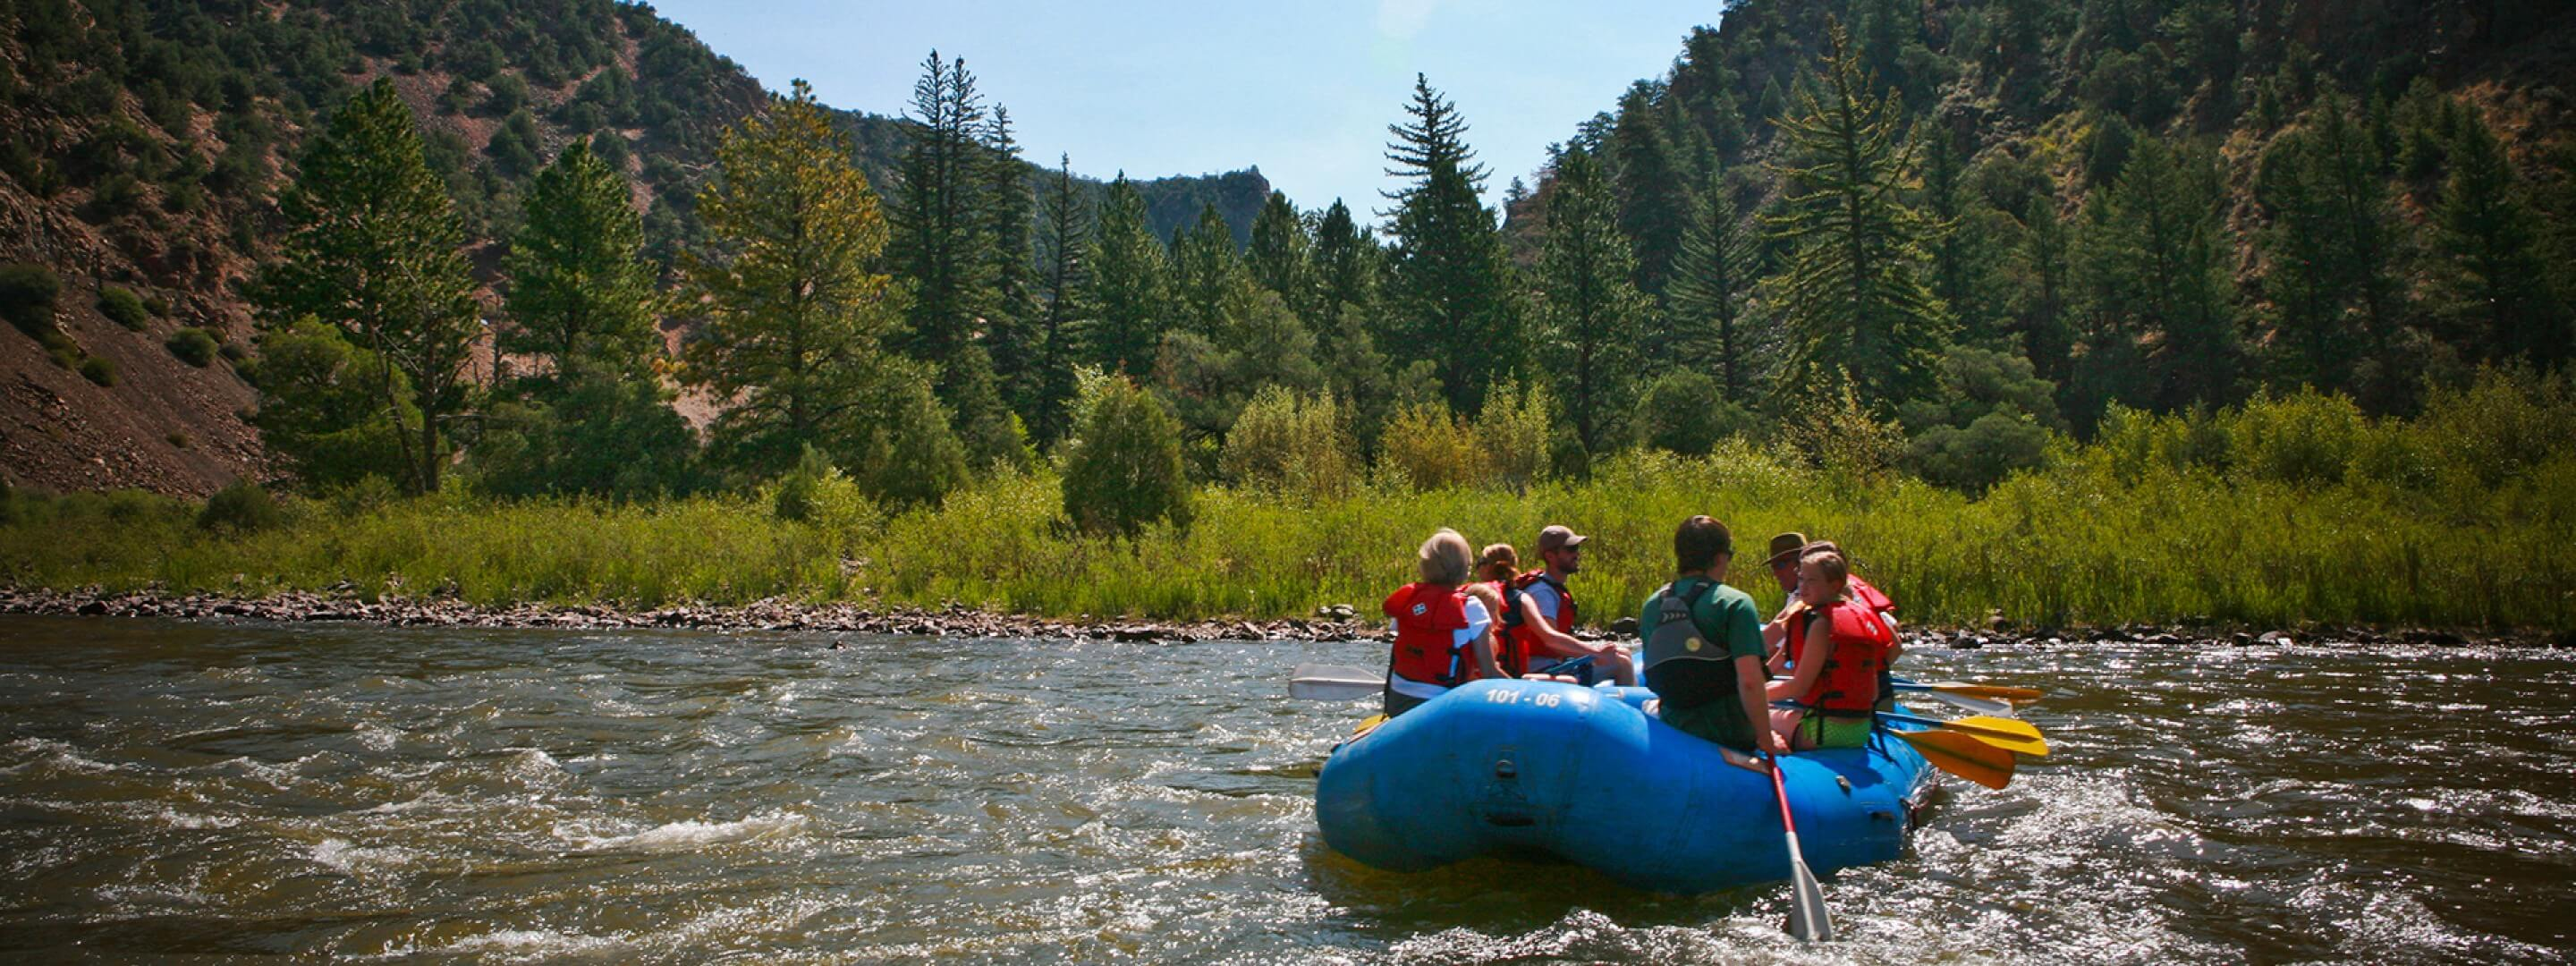 Rafting Trip Packing List: What to Bring